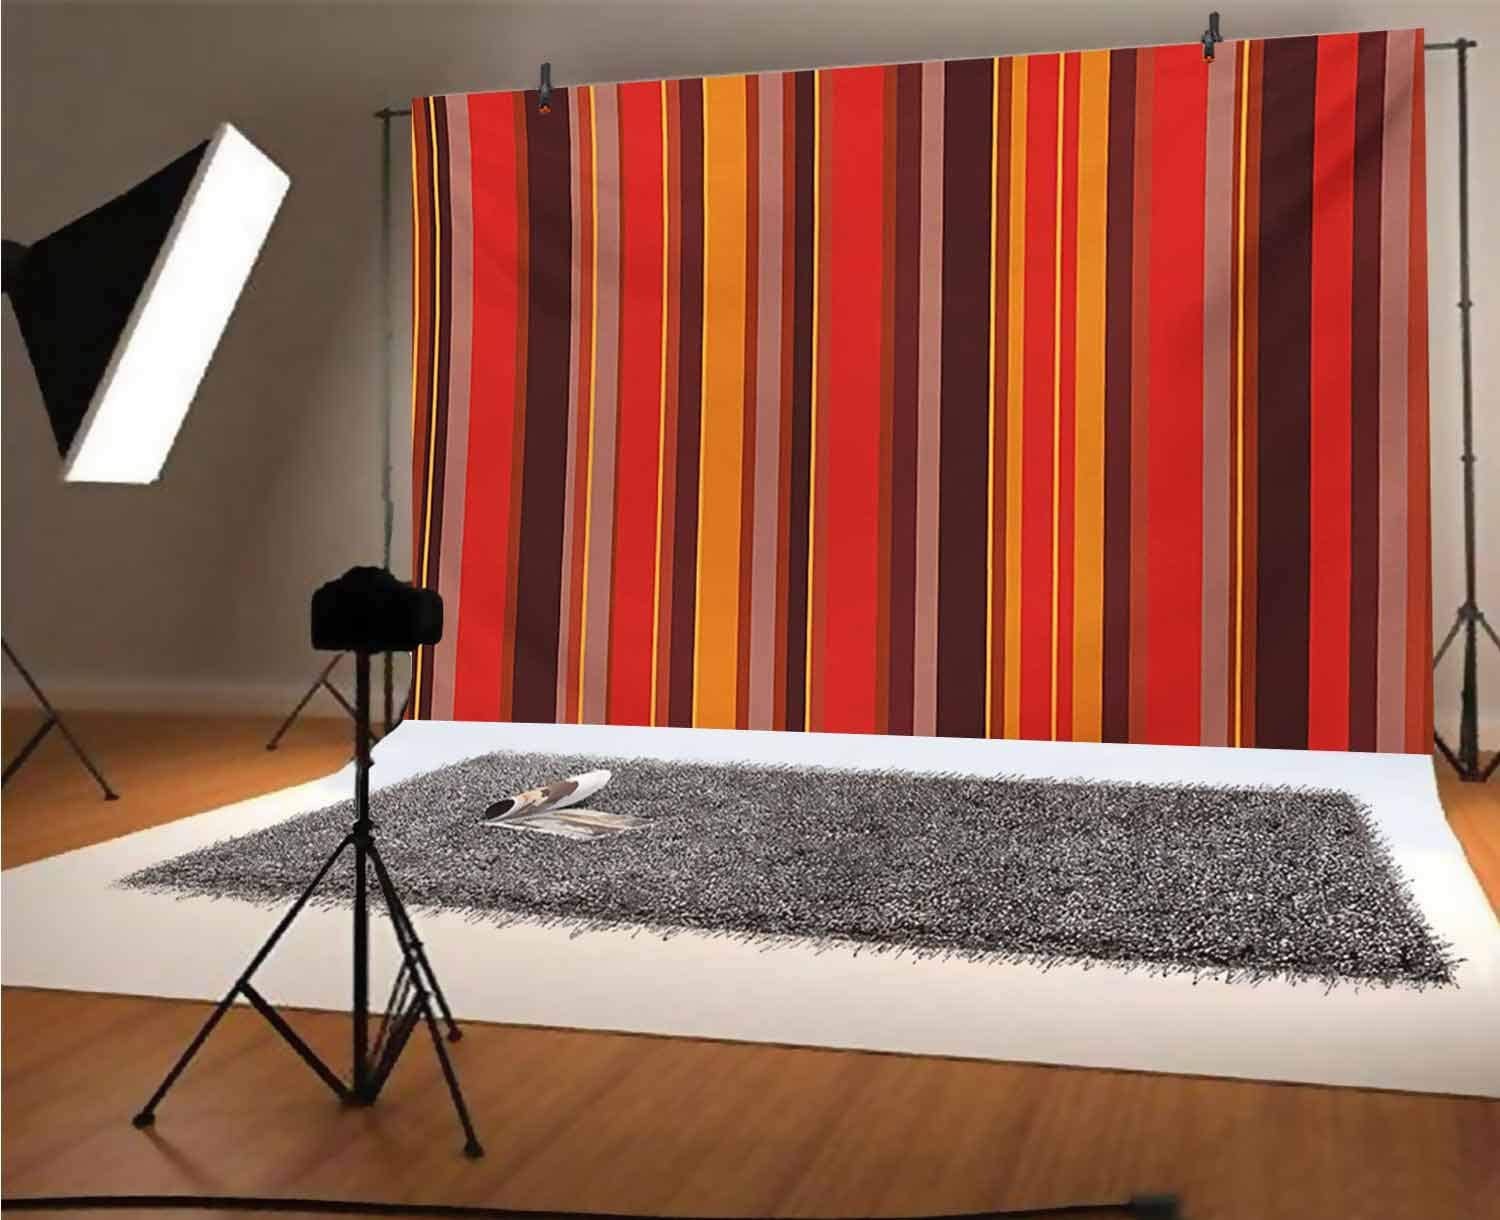 Geometric 12x10 FT Vinyl Photography Background Backdrops,Vertical Tiny and Thick Lines Striped Retro Style Graphic Pattern Artwork Background for Photo Backdrop Studio Props Photo Backdrop Wall